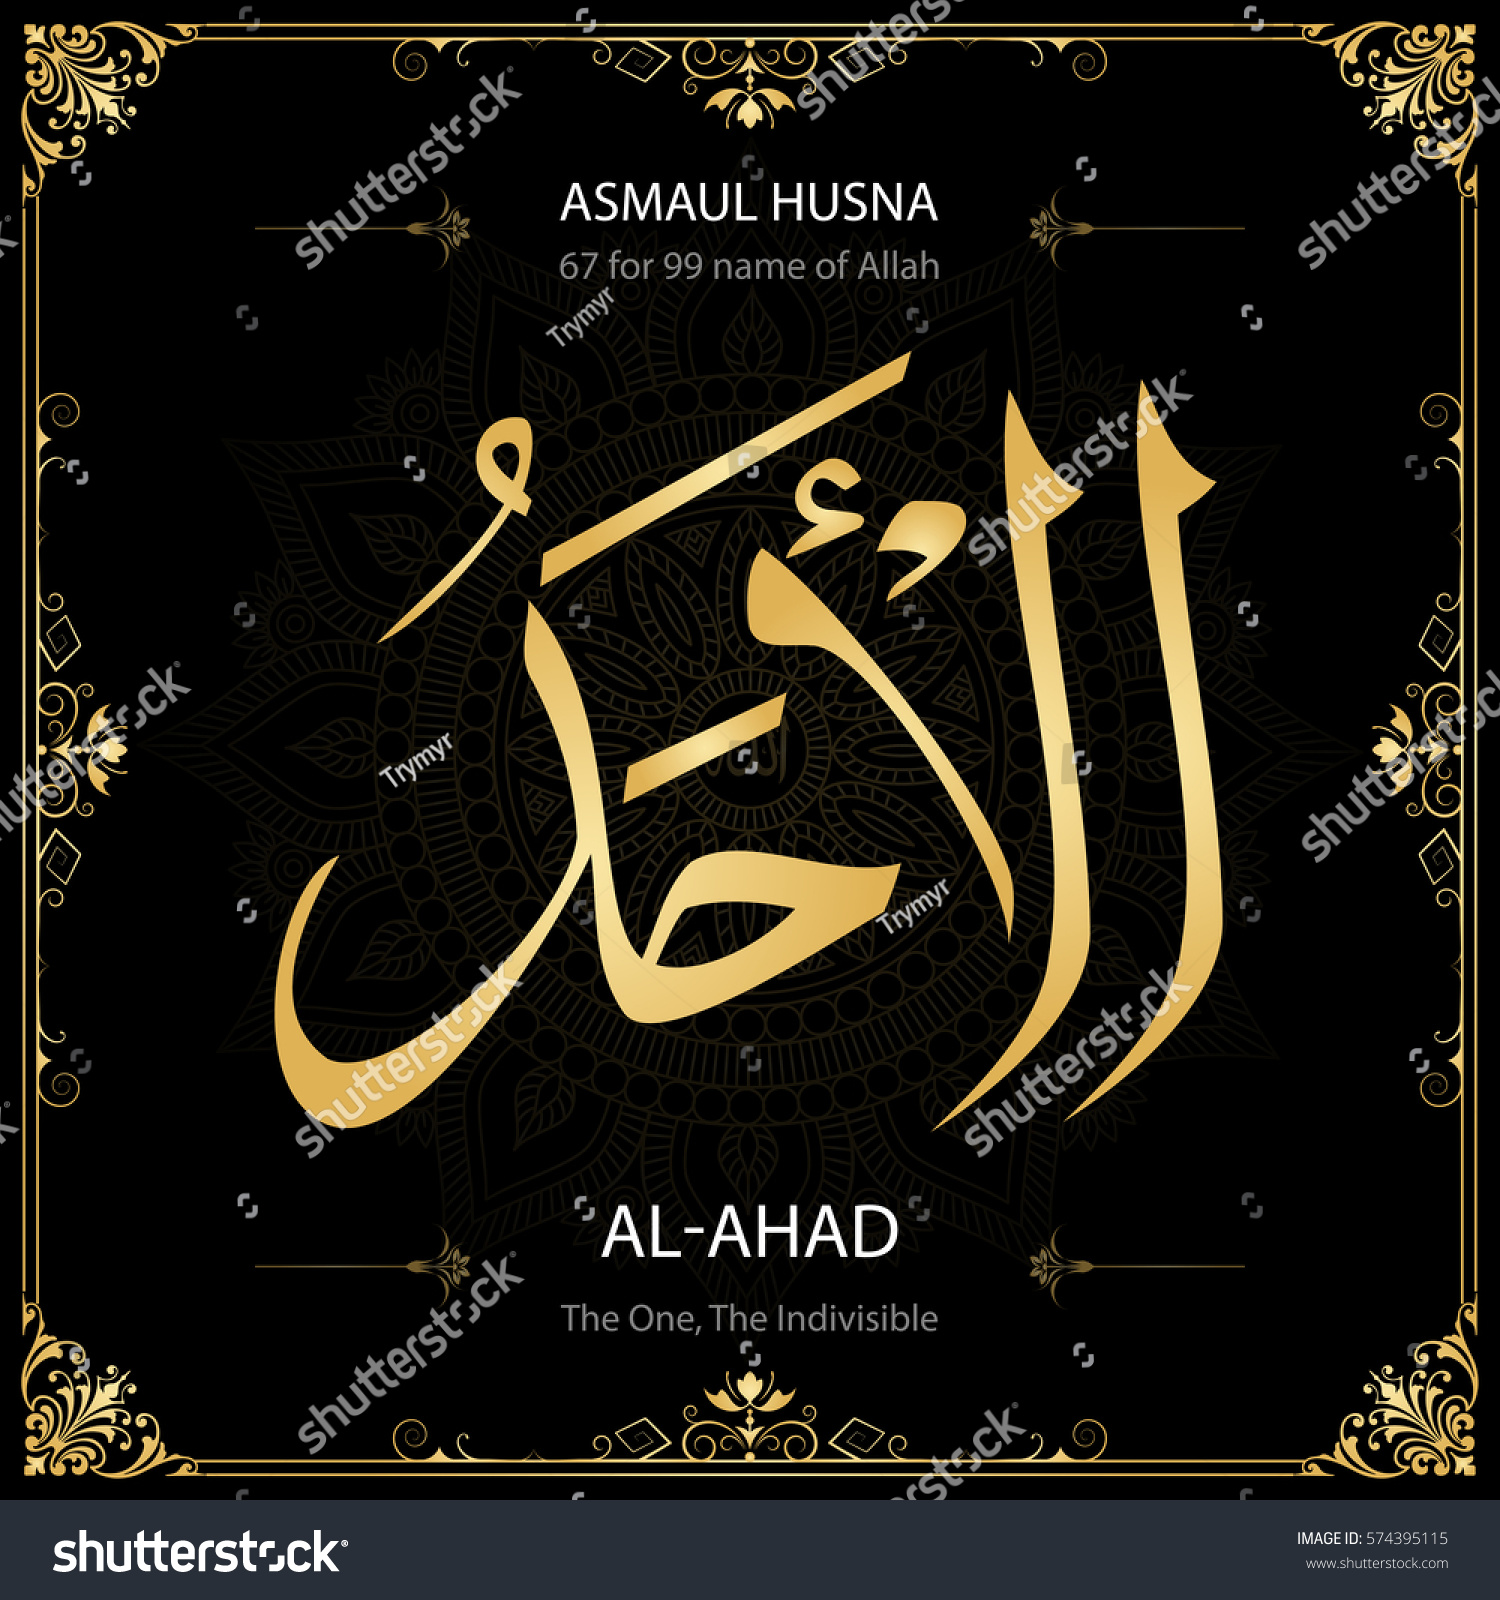 99 names of allah in arabic pdf free download